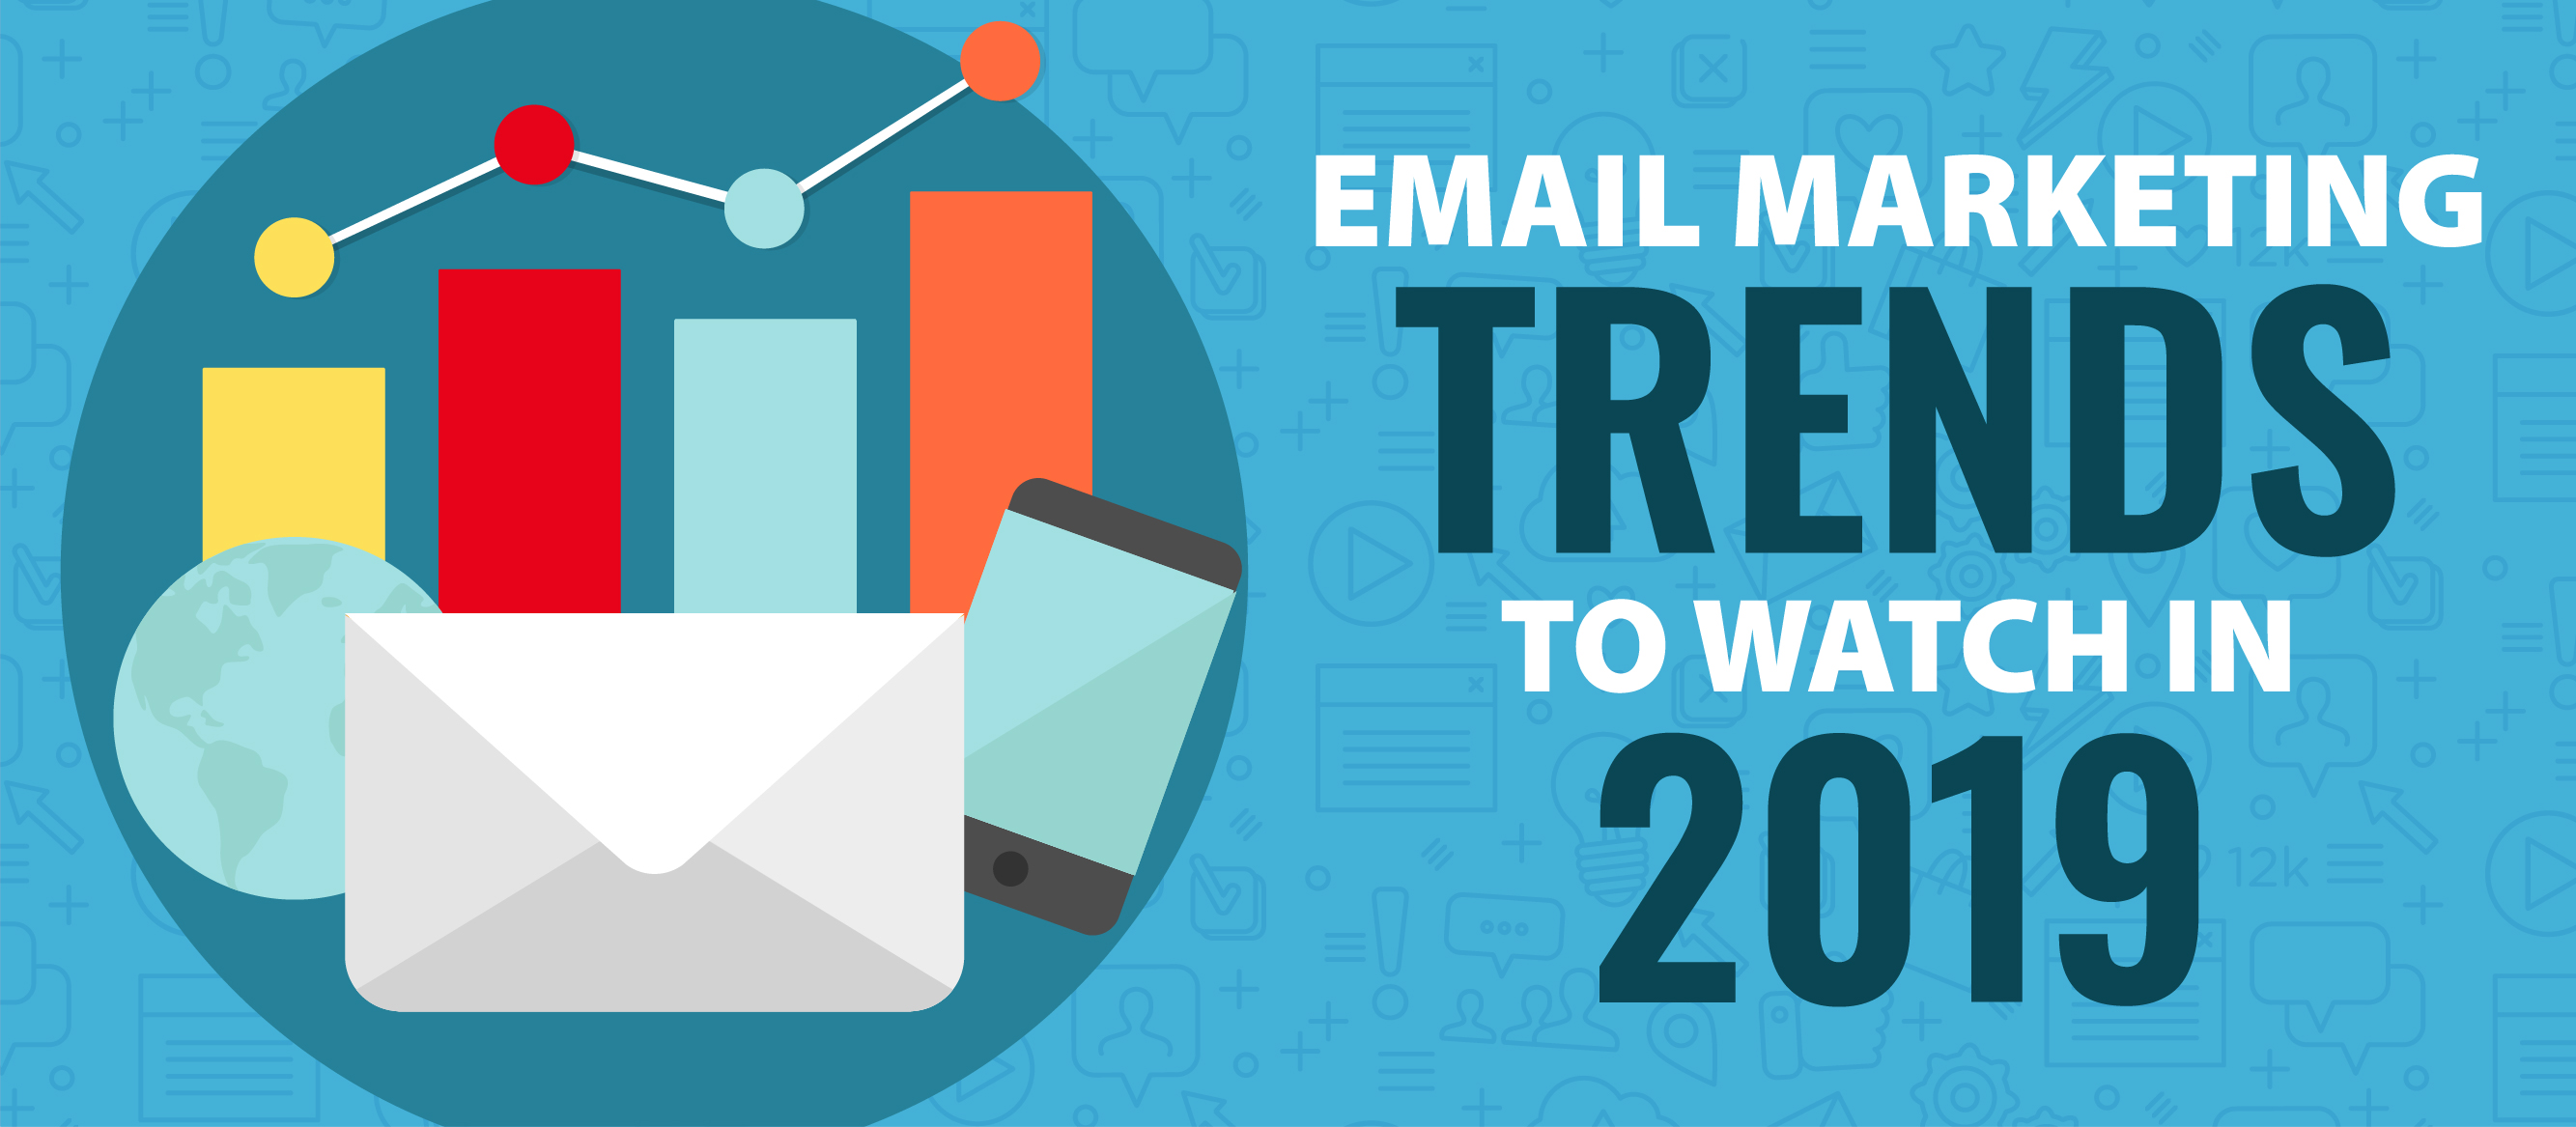 Email Marketing Trends to Watch in 2019